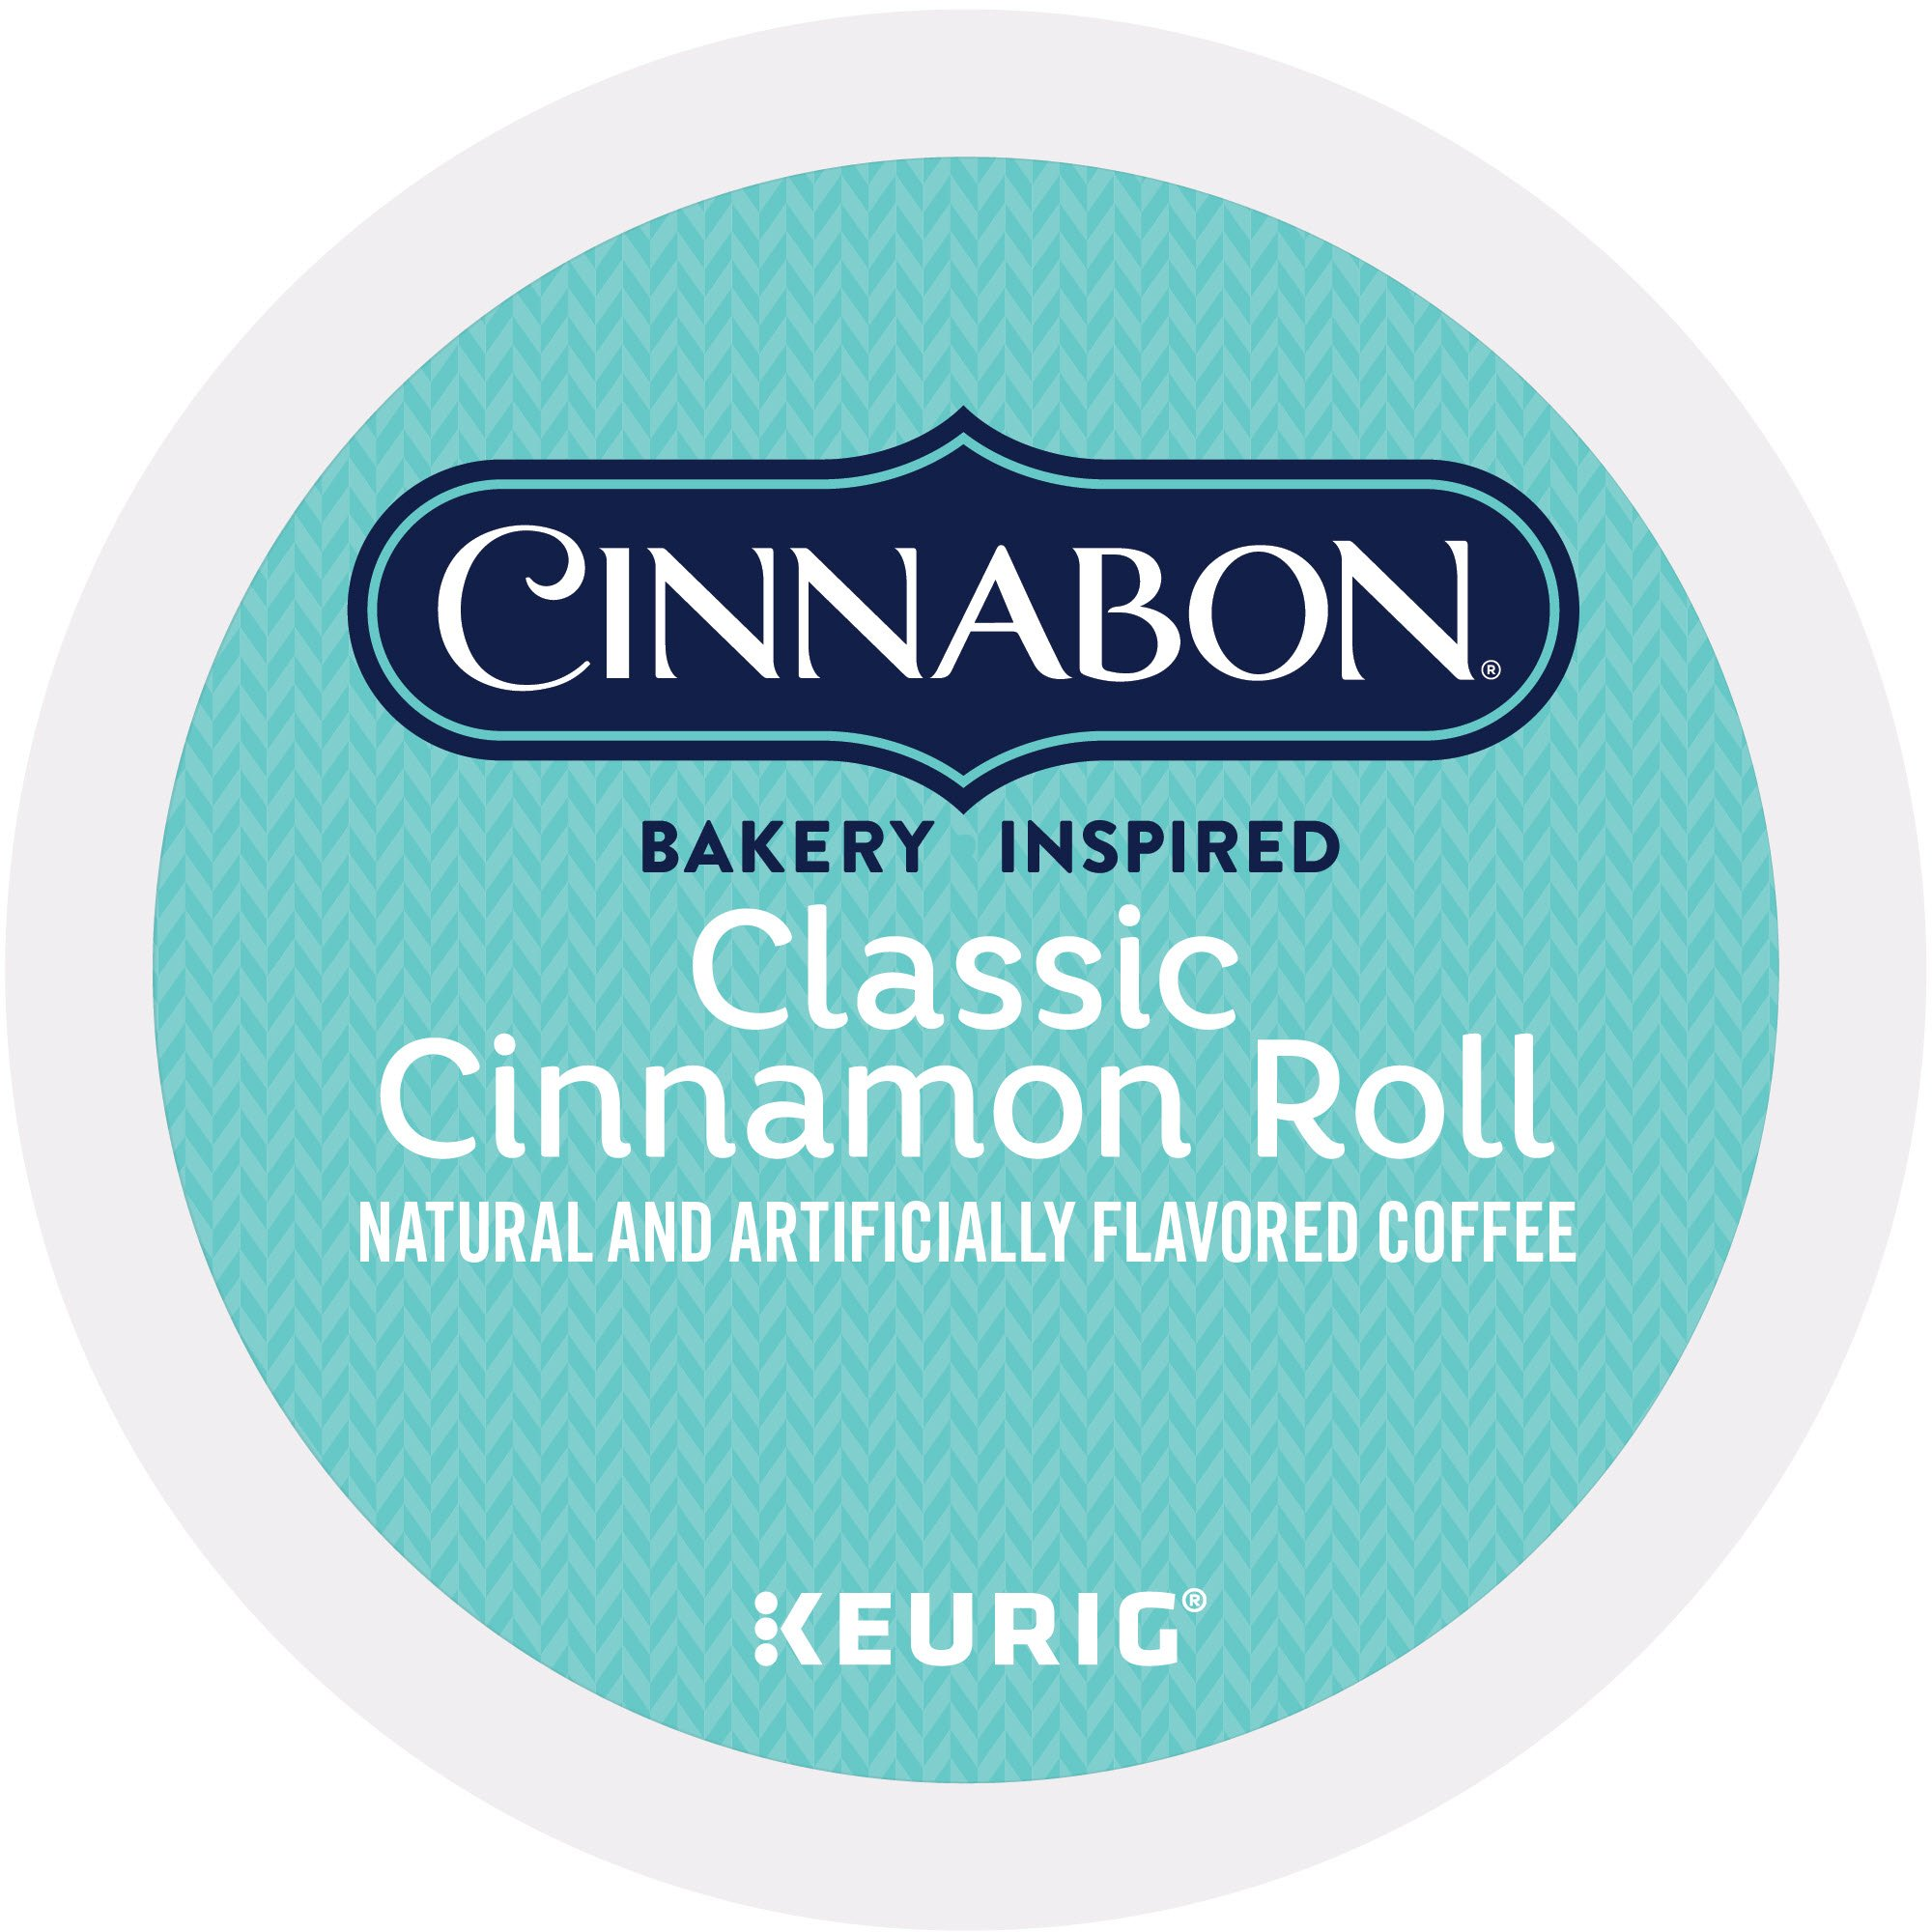 Cinnabon Classic Cinnamon Roll Coffee Keurig Single-Serve K-Cup Pods, 24 Count